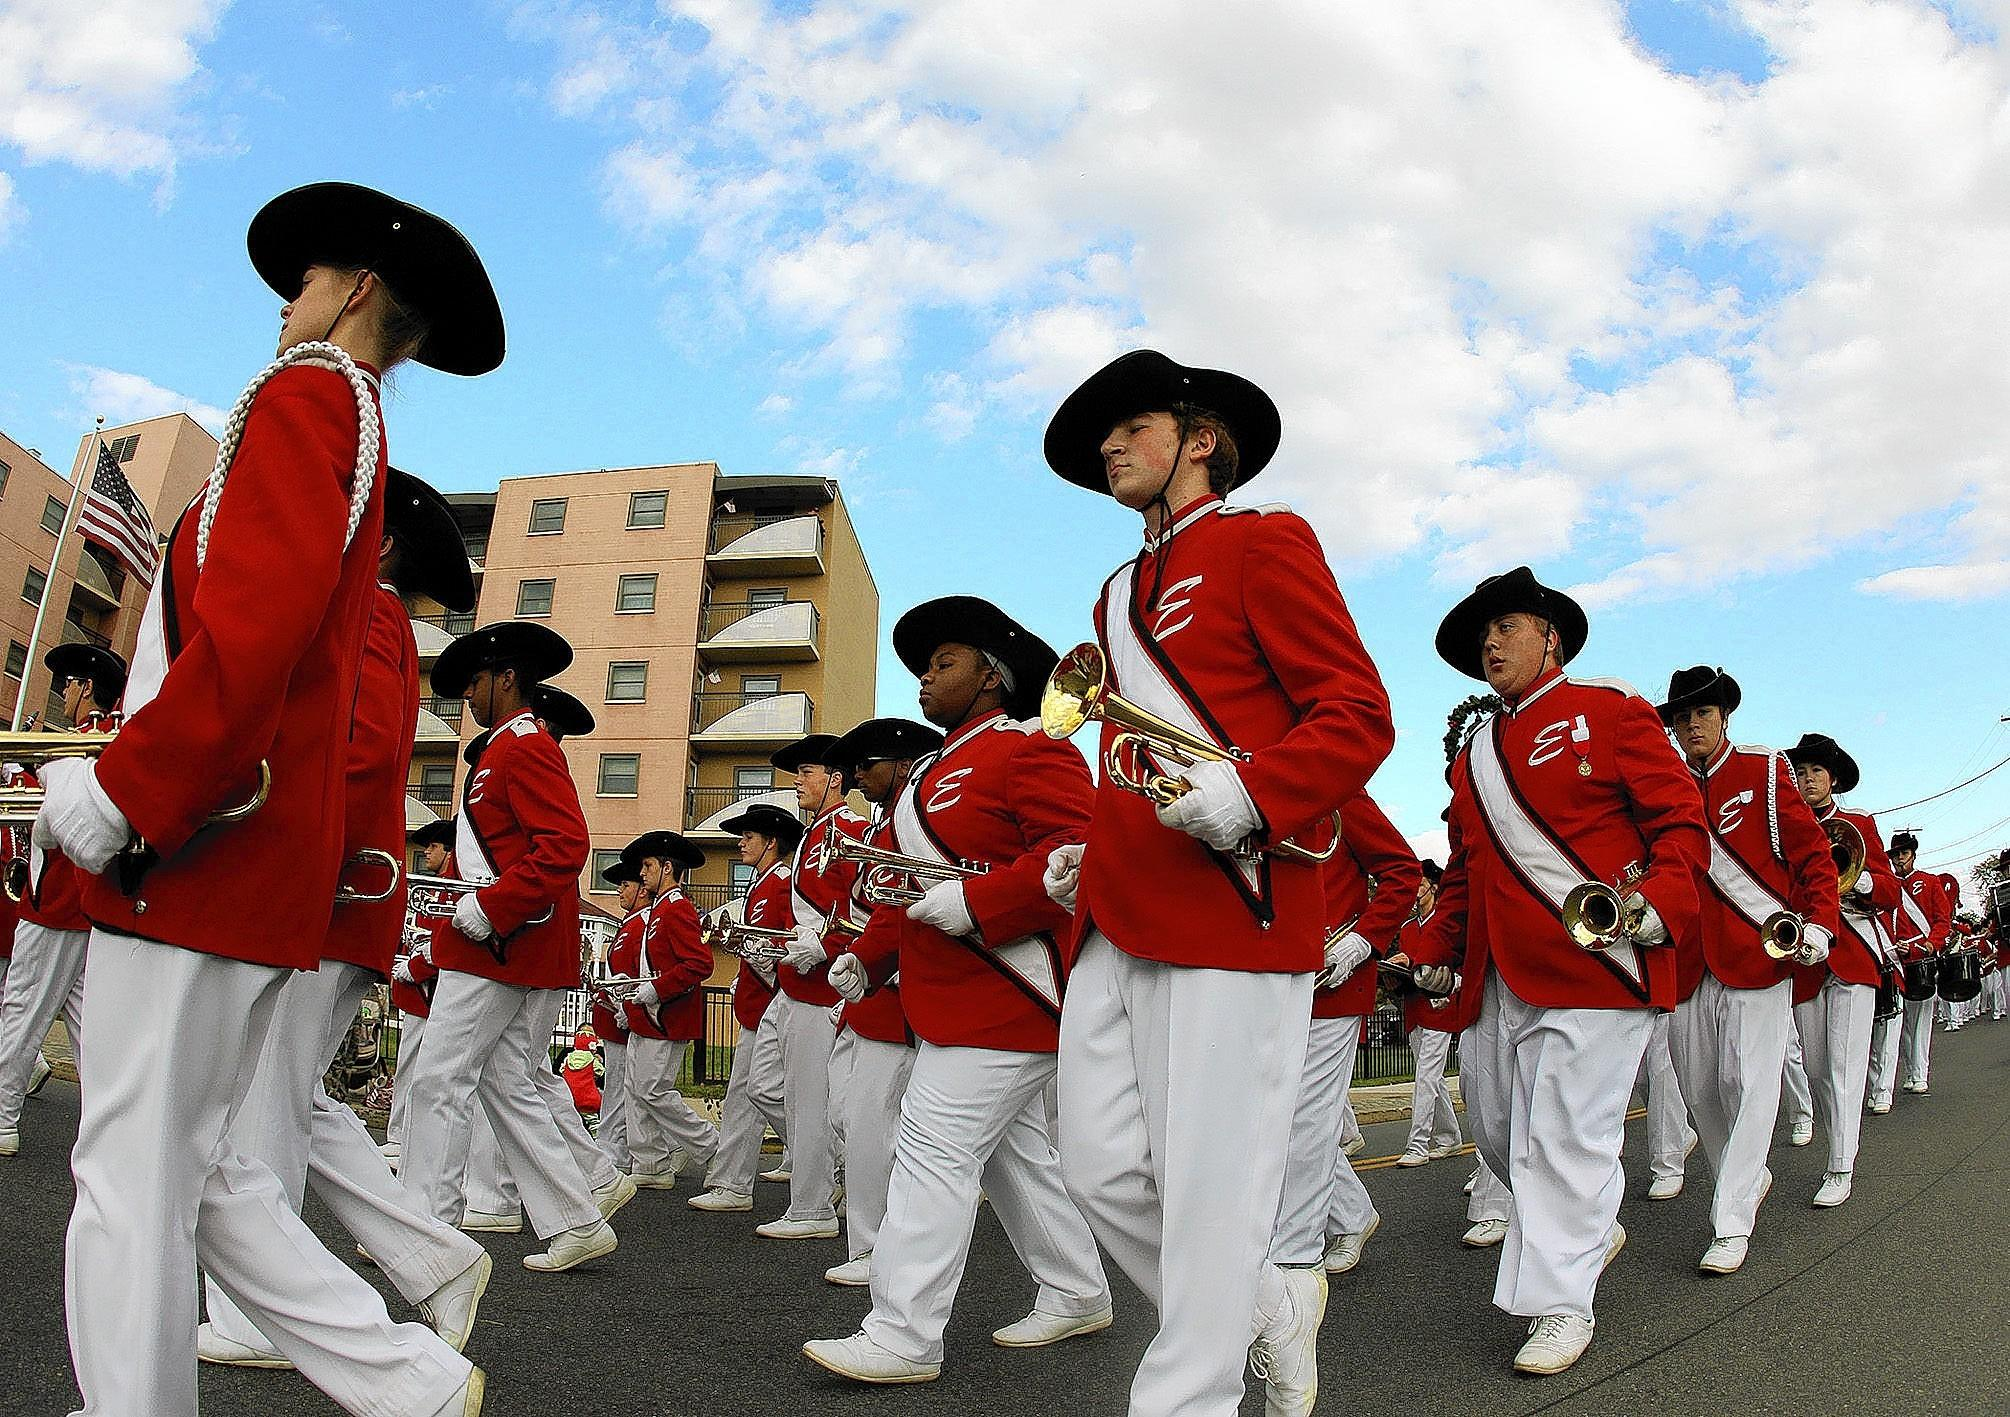 Easton High School Marching Band comes down Main Street, during the Phillipsburg Easton Halloween Parade Sunday October 27, 2013. ////// - NEWS - CHRIS KNIGHT / SPECIAL TO THE MORNING CALL